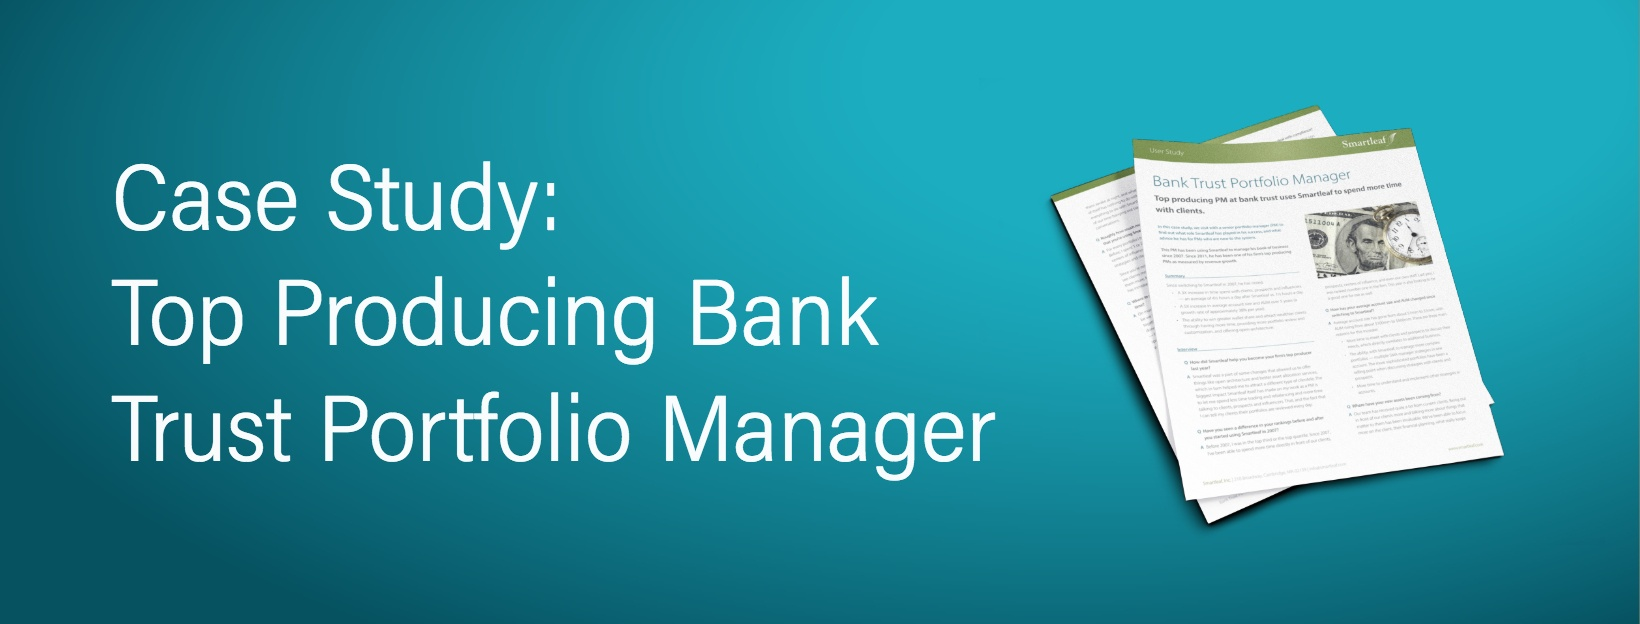 Case Study: Bank Trust Portfolio Manager